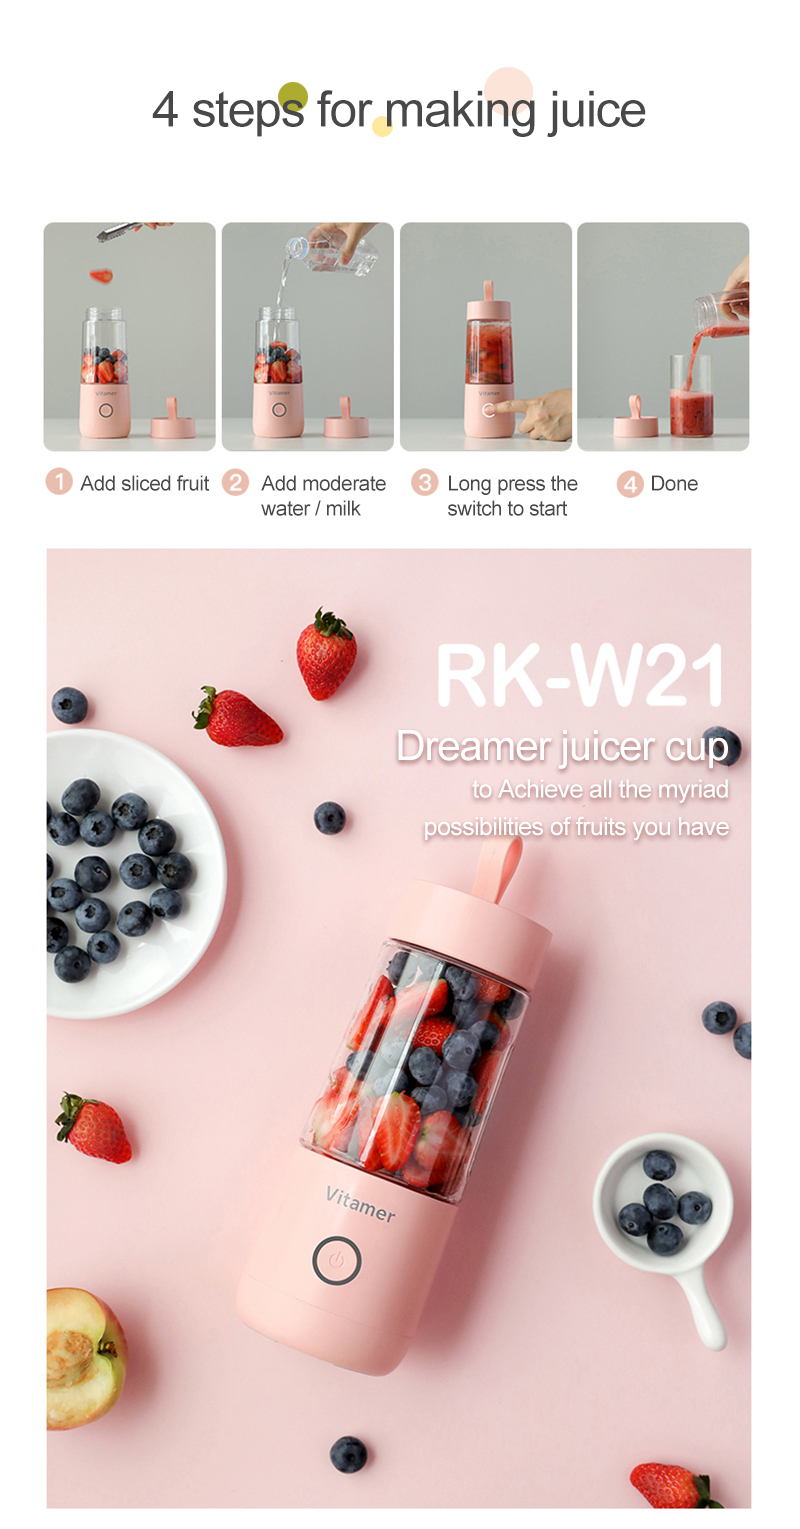 RK-W21Juicer Blender Freshly squeezed juice mixer 350ml Rechargeable portable Blender vitamer 2000mAh juice bottle